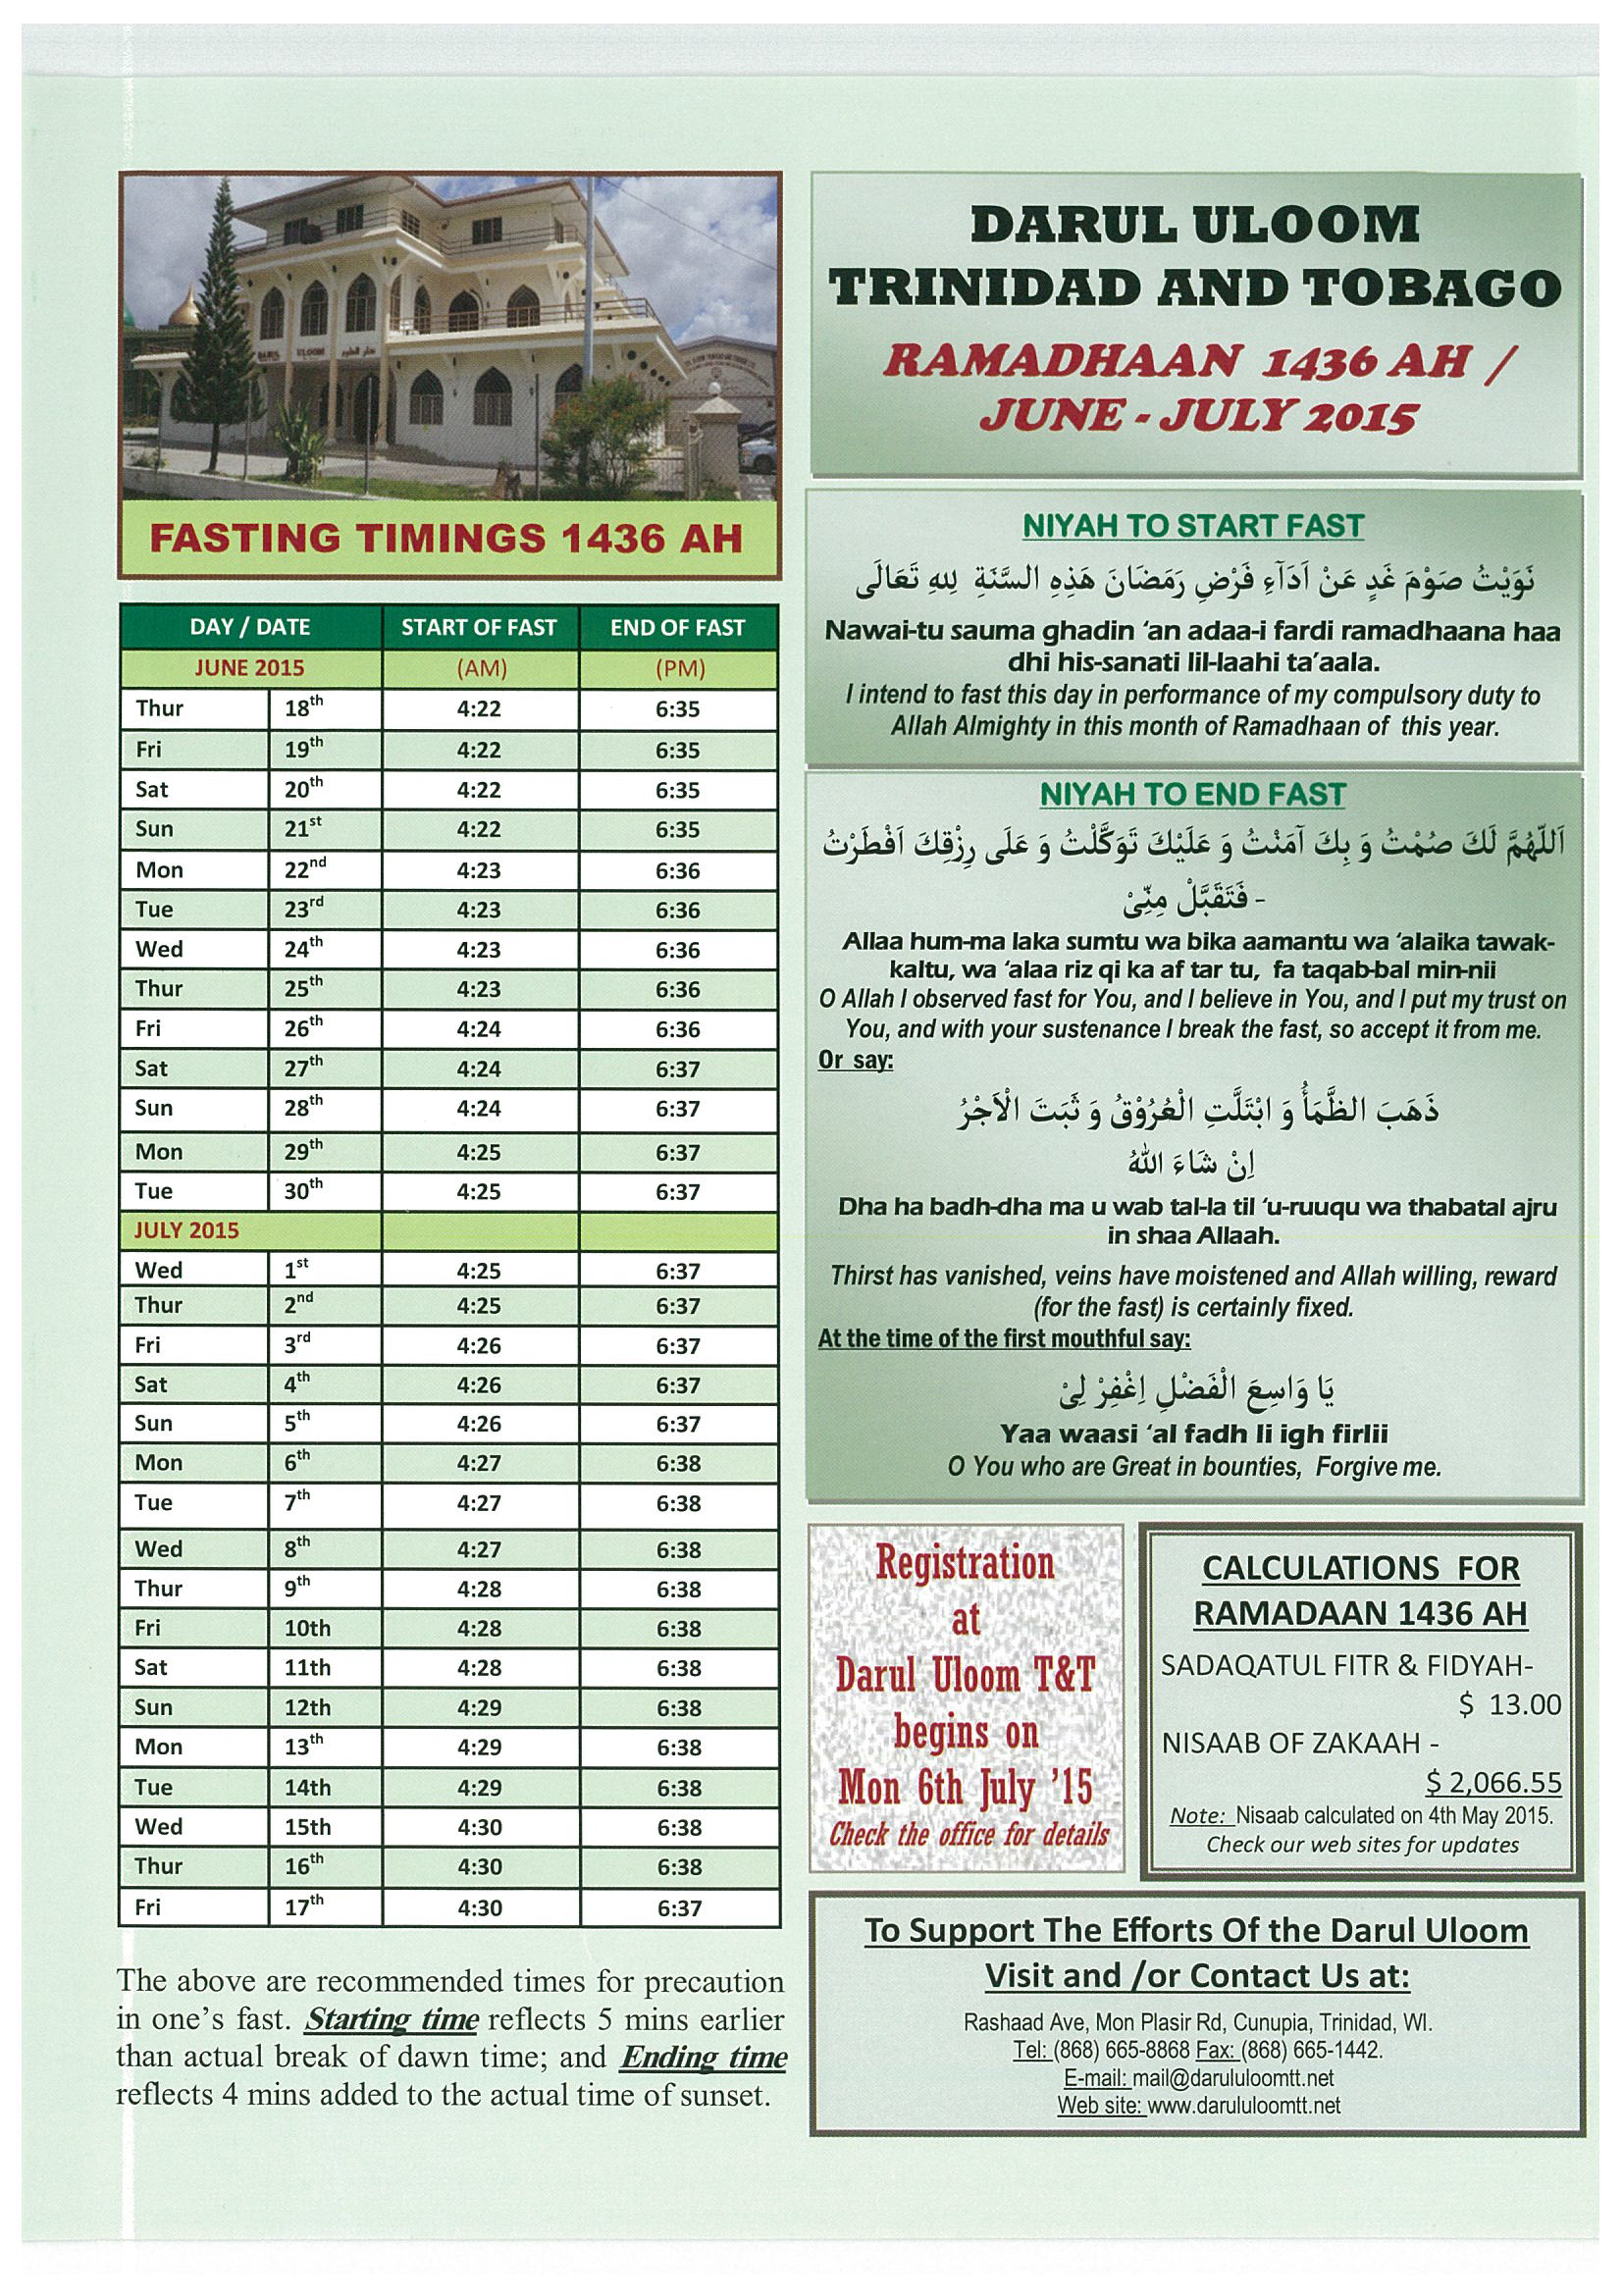 Ramadan Time Table | Darul Uloom Trinidad & Tobago intended for Ramadan Time Table 2015